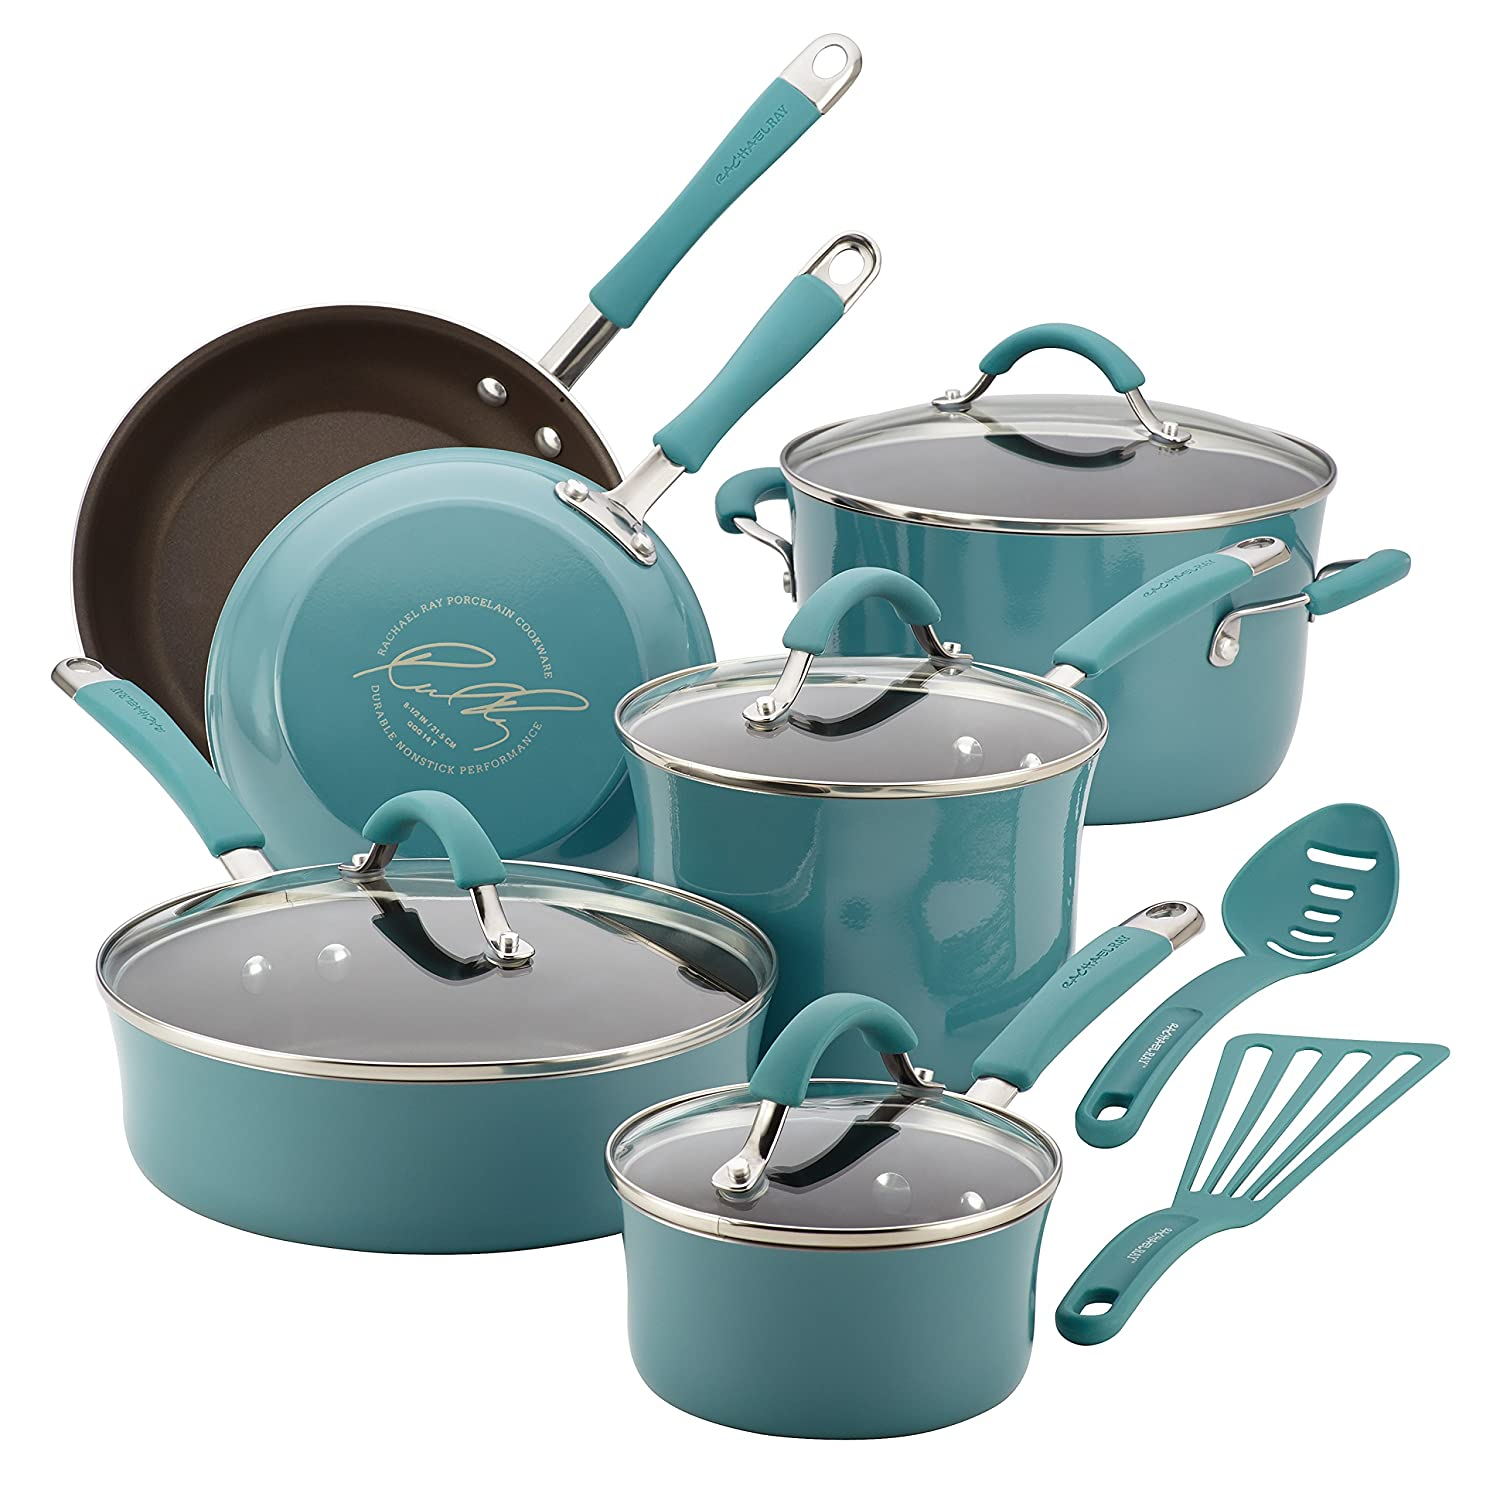 Rachael Ray Agave Blue Cucina Porcelain Enamel 12-Piece Kit Agave Blue